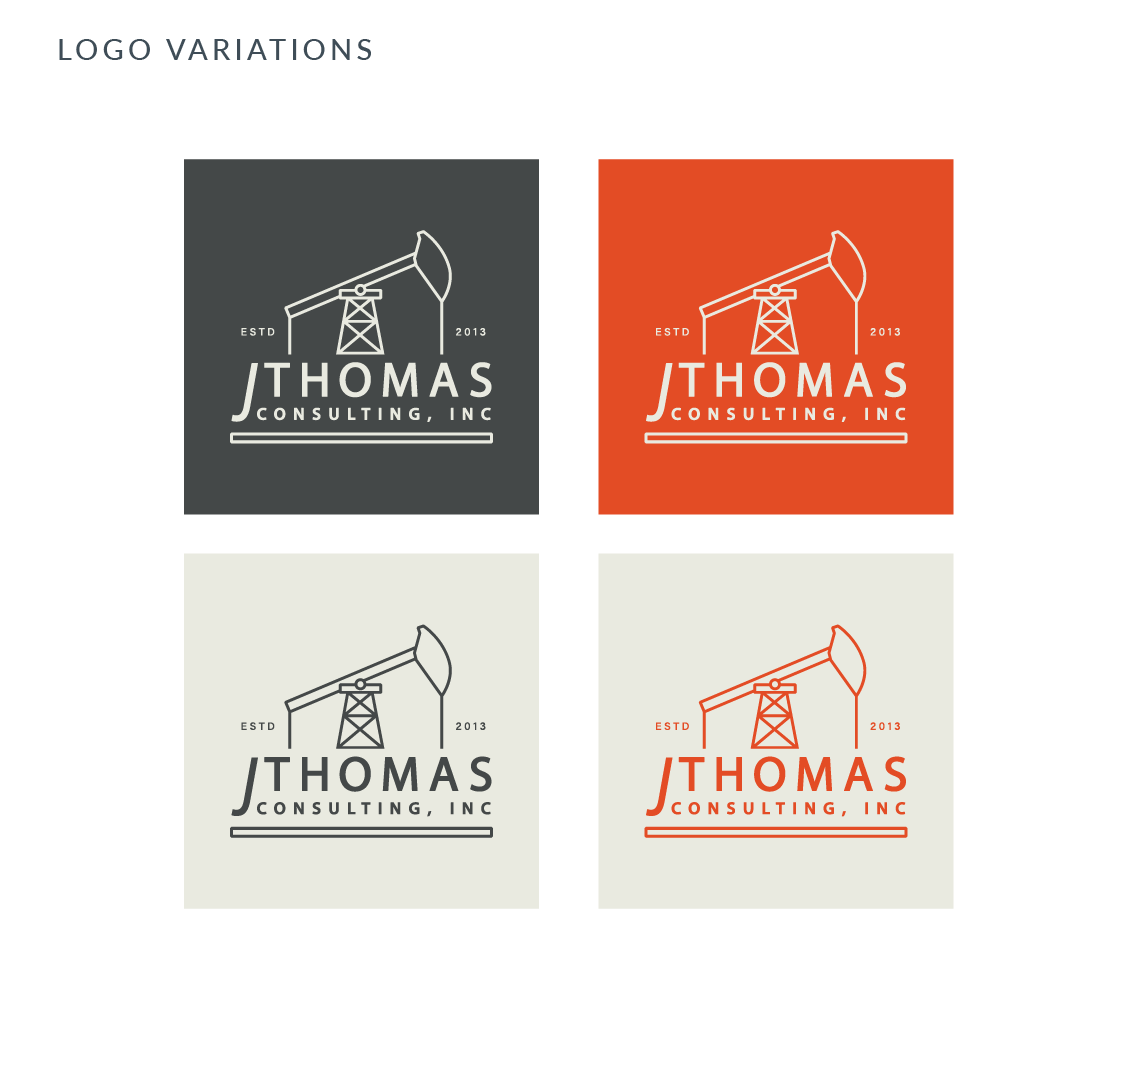 j thomas consulting-65.png